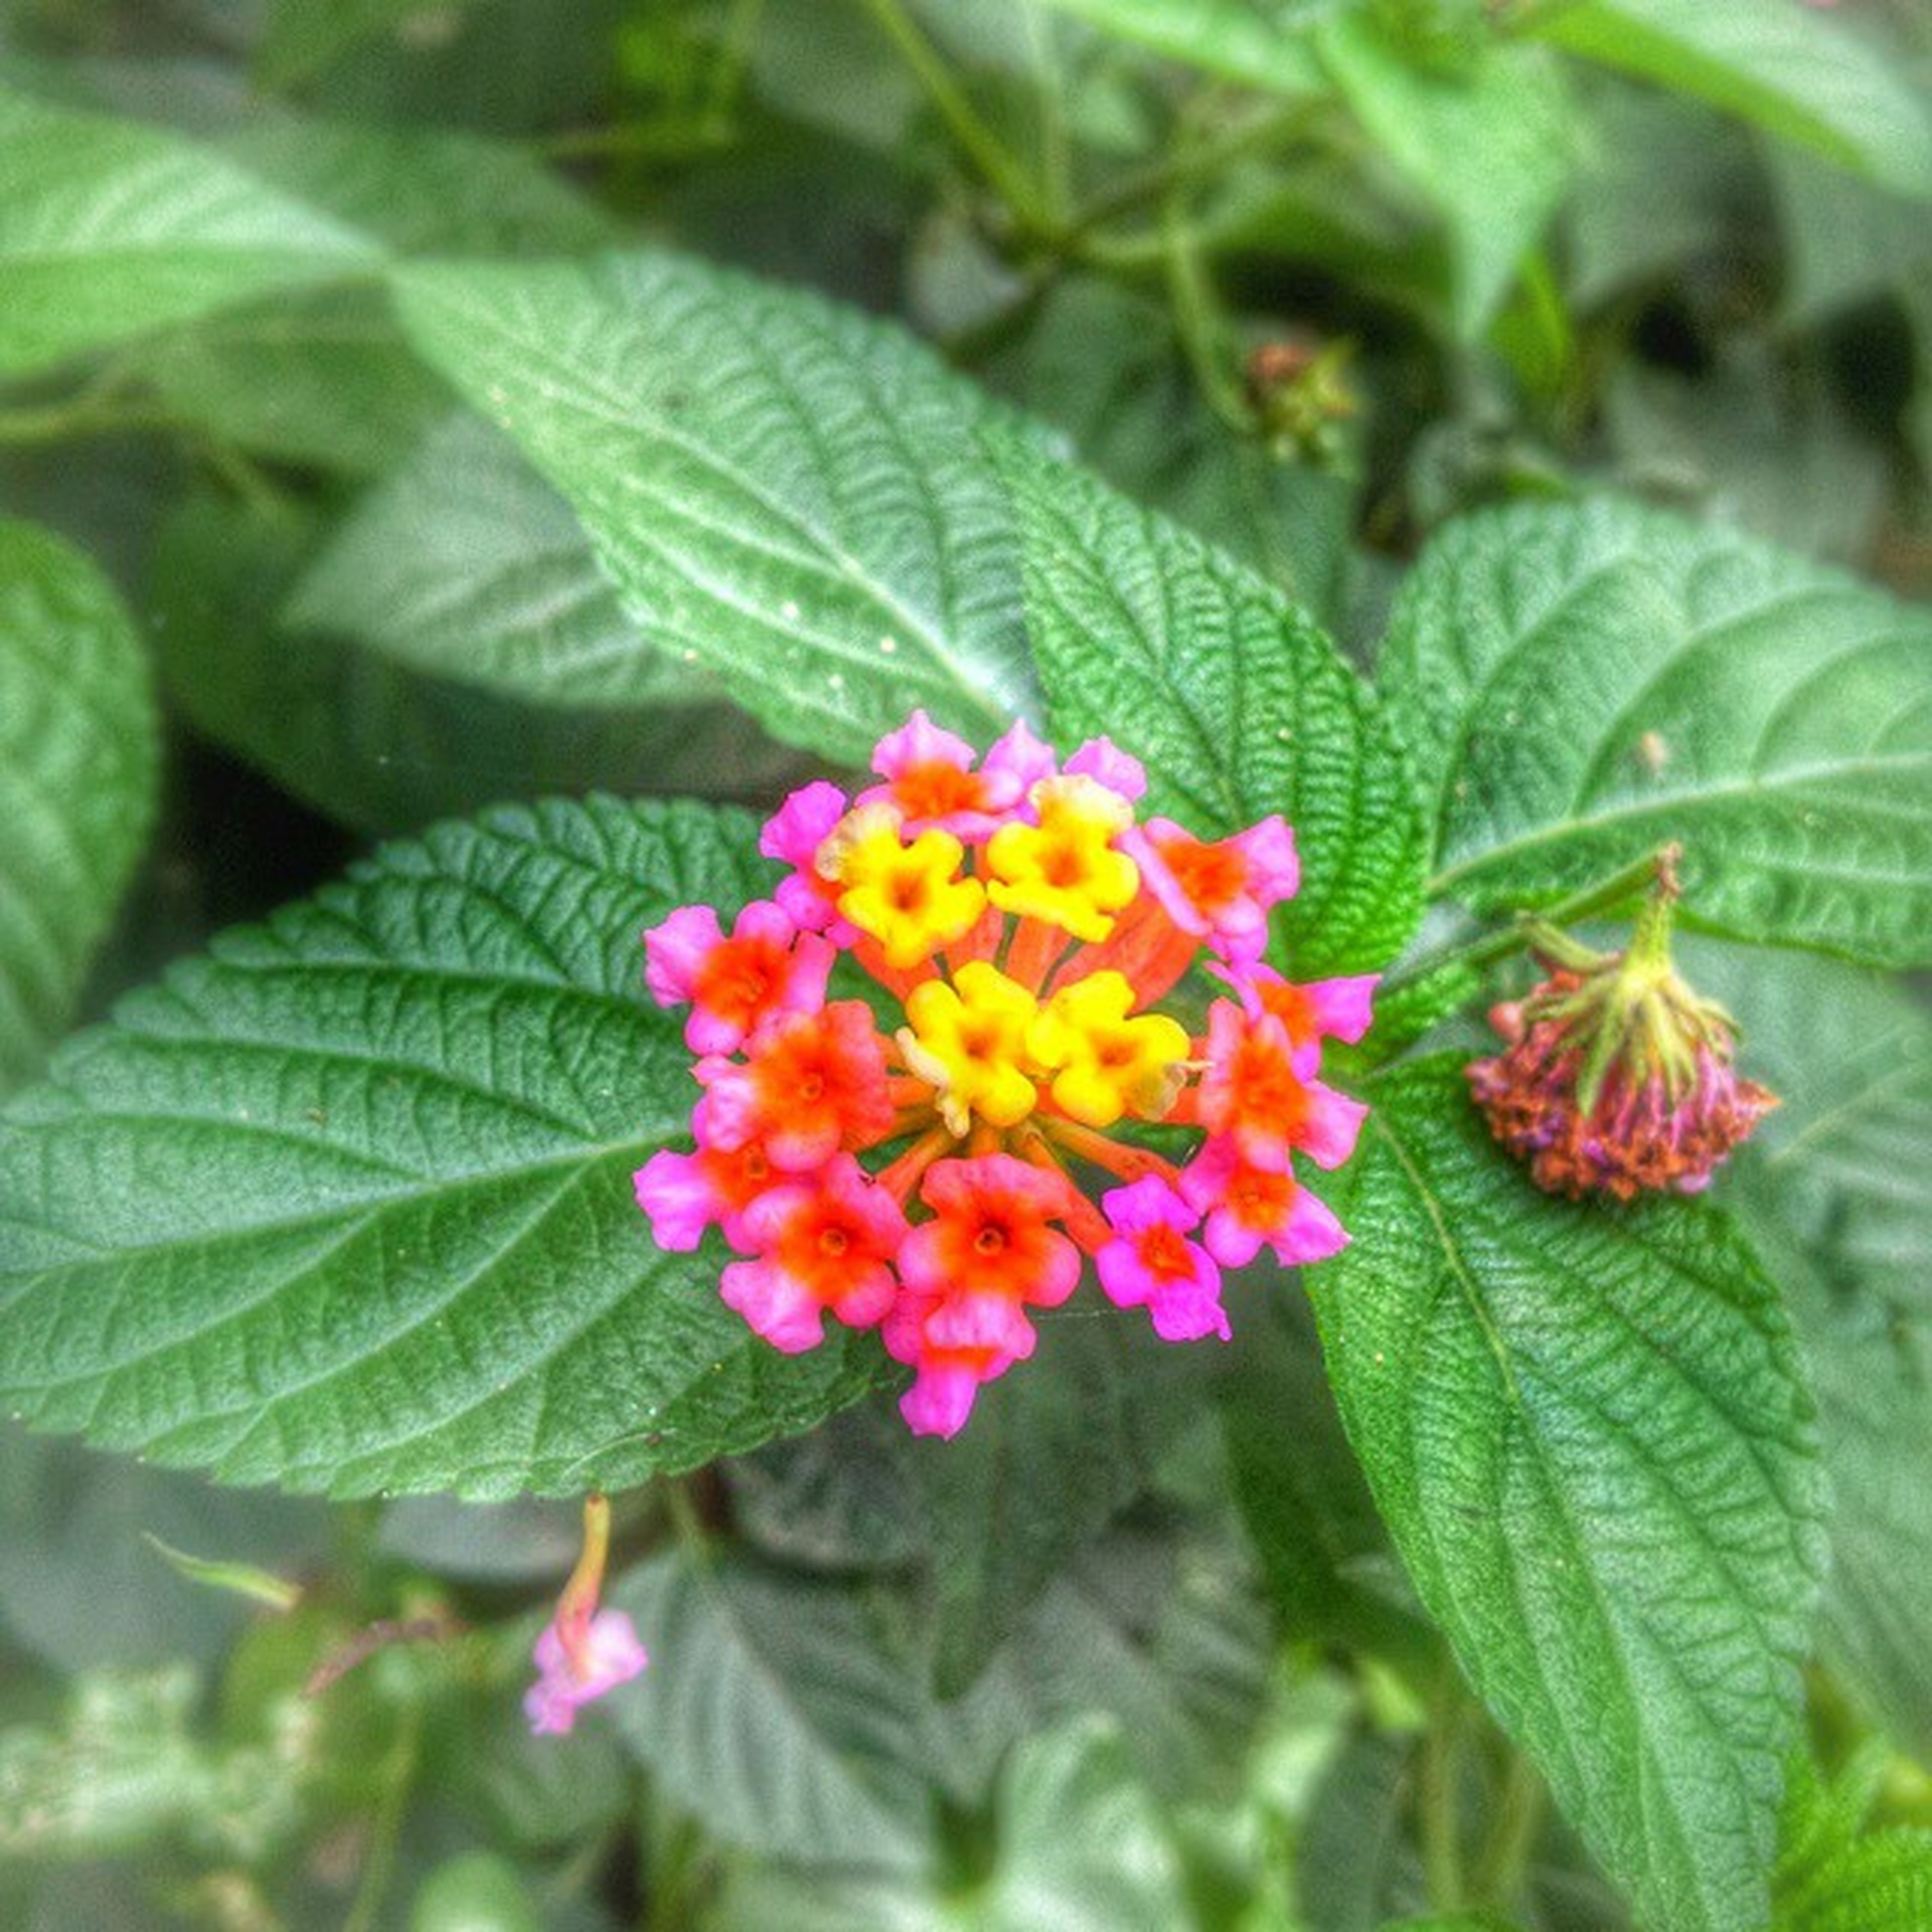 leaf, flower, freshness, growth, fragility, petal, close-up, plant, beauty in nature, green color, flower head, nature, focus on foreground, blooming, high angle view, day, outdoors, selective focus, in bloom, botany